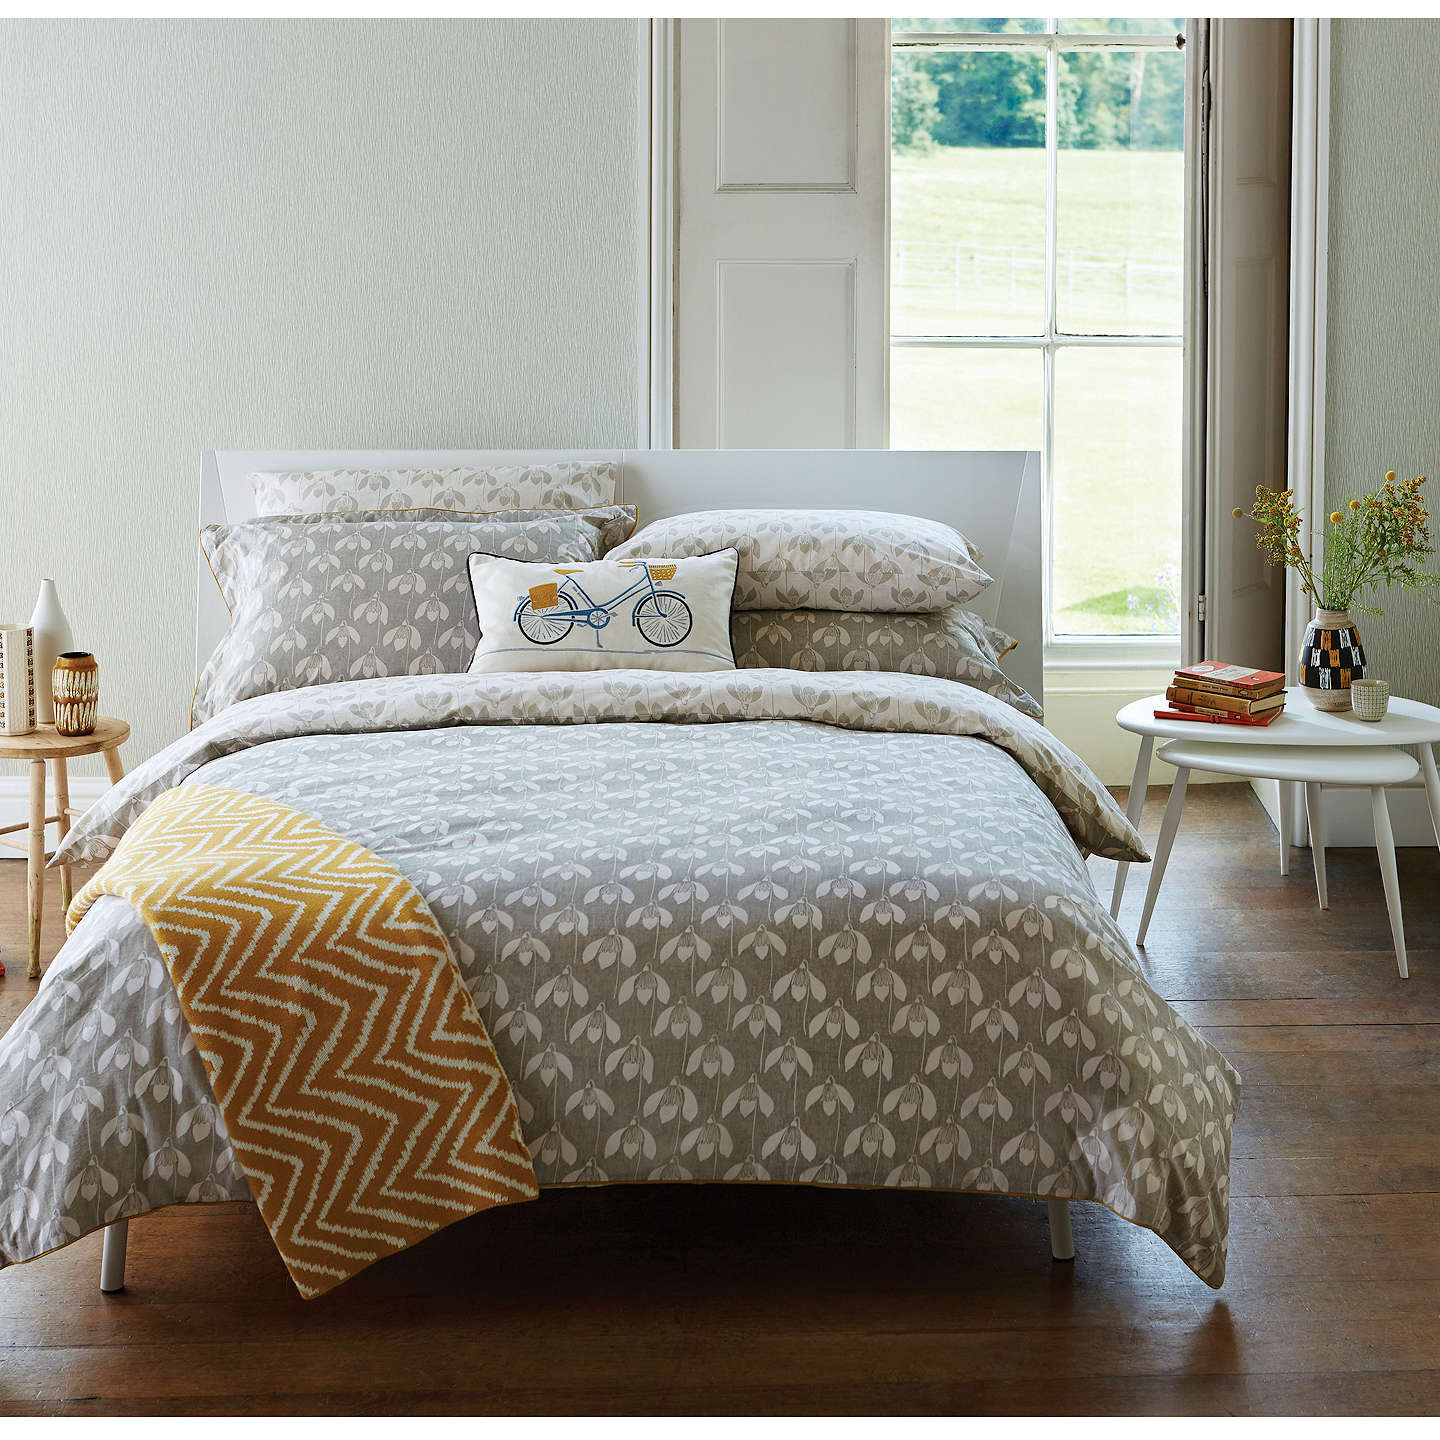 scion snowdrop bedding at john lewis. Black Bedroom Furniture Sets. Home Design Ideas